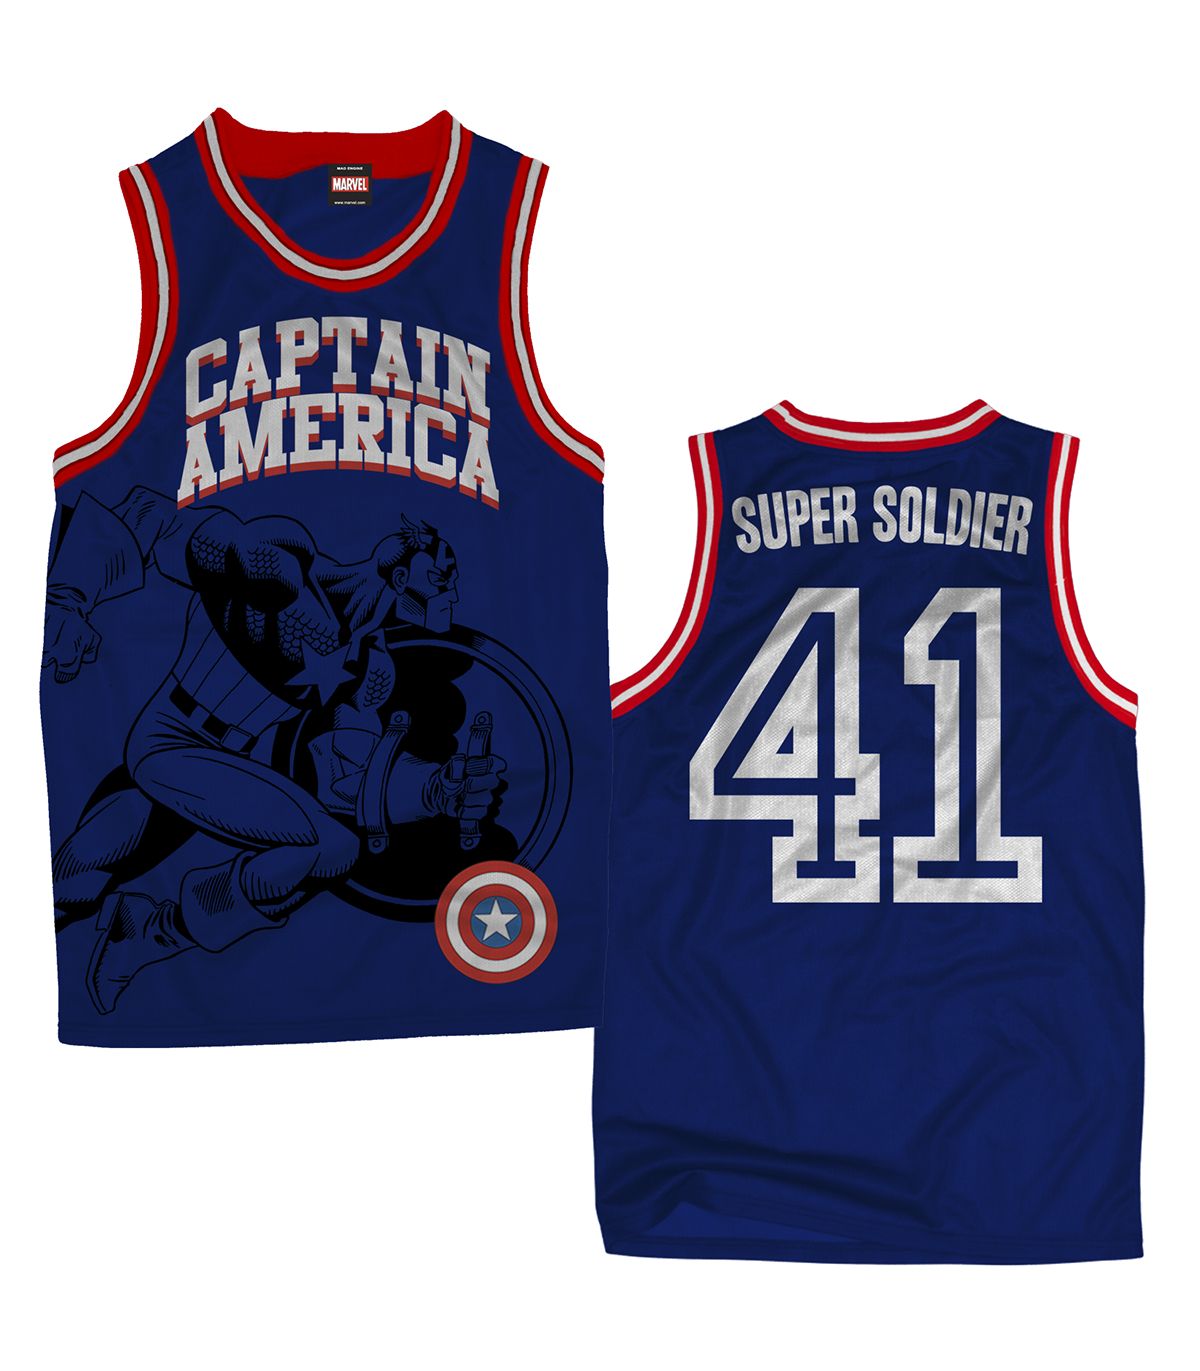 CAPTAIN AMERICA WE ARE #1 BASKETBALL JERSEY MED